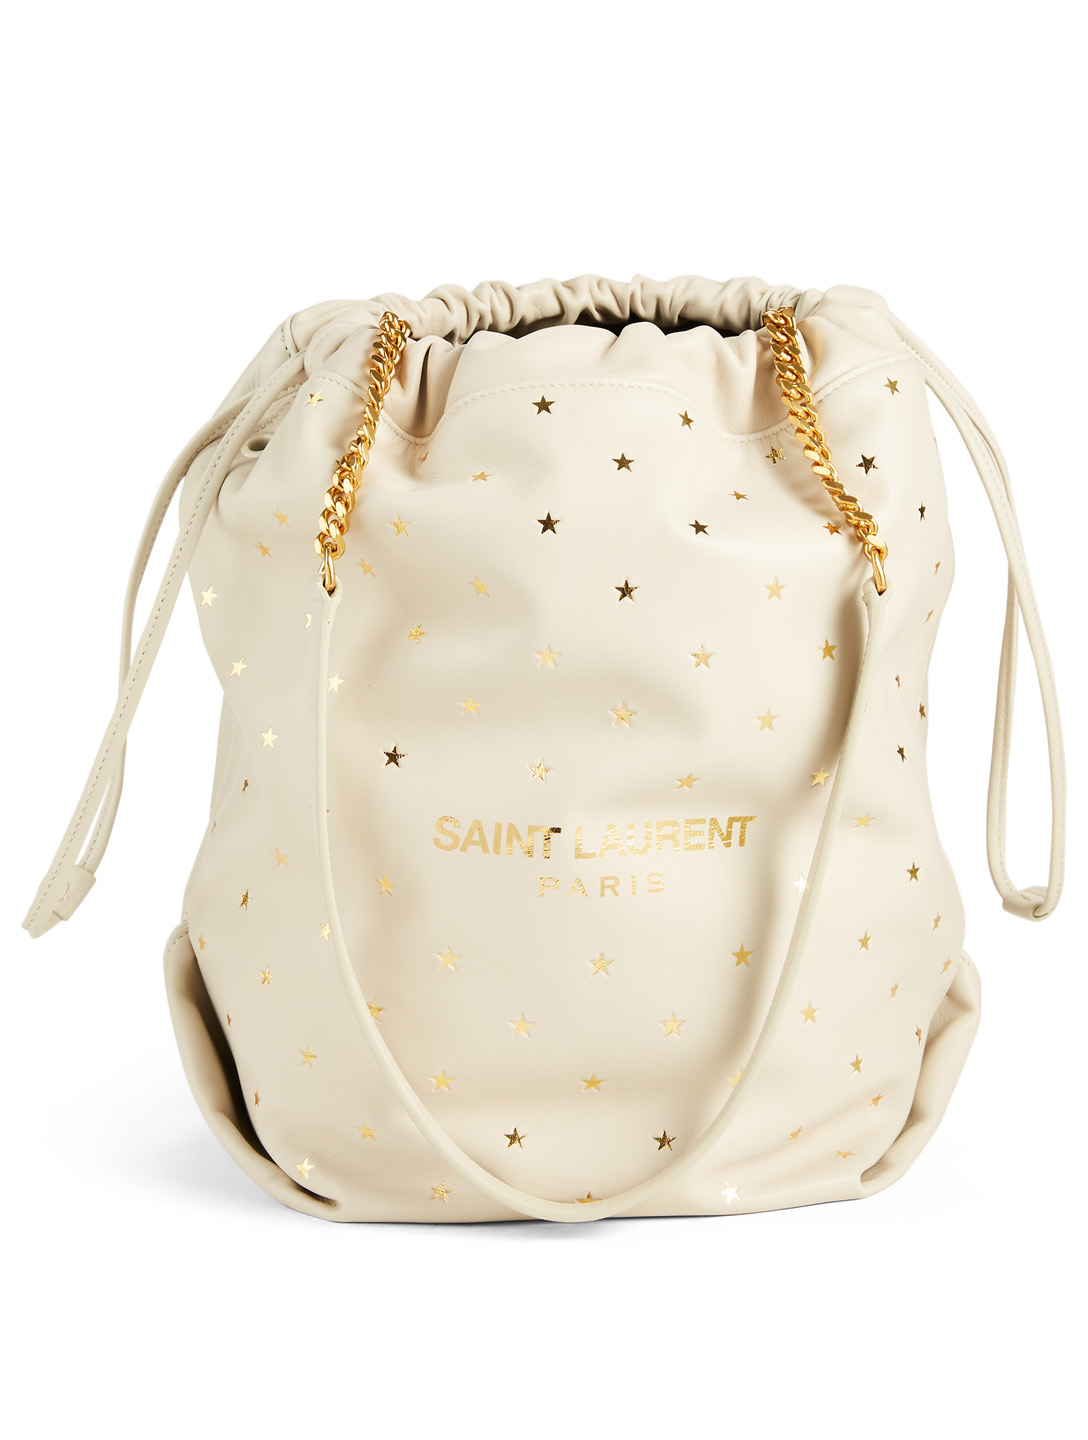 SAINT LAURENT Teddy Leather Bucket Bag With Little Stars Women's Neutral